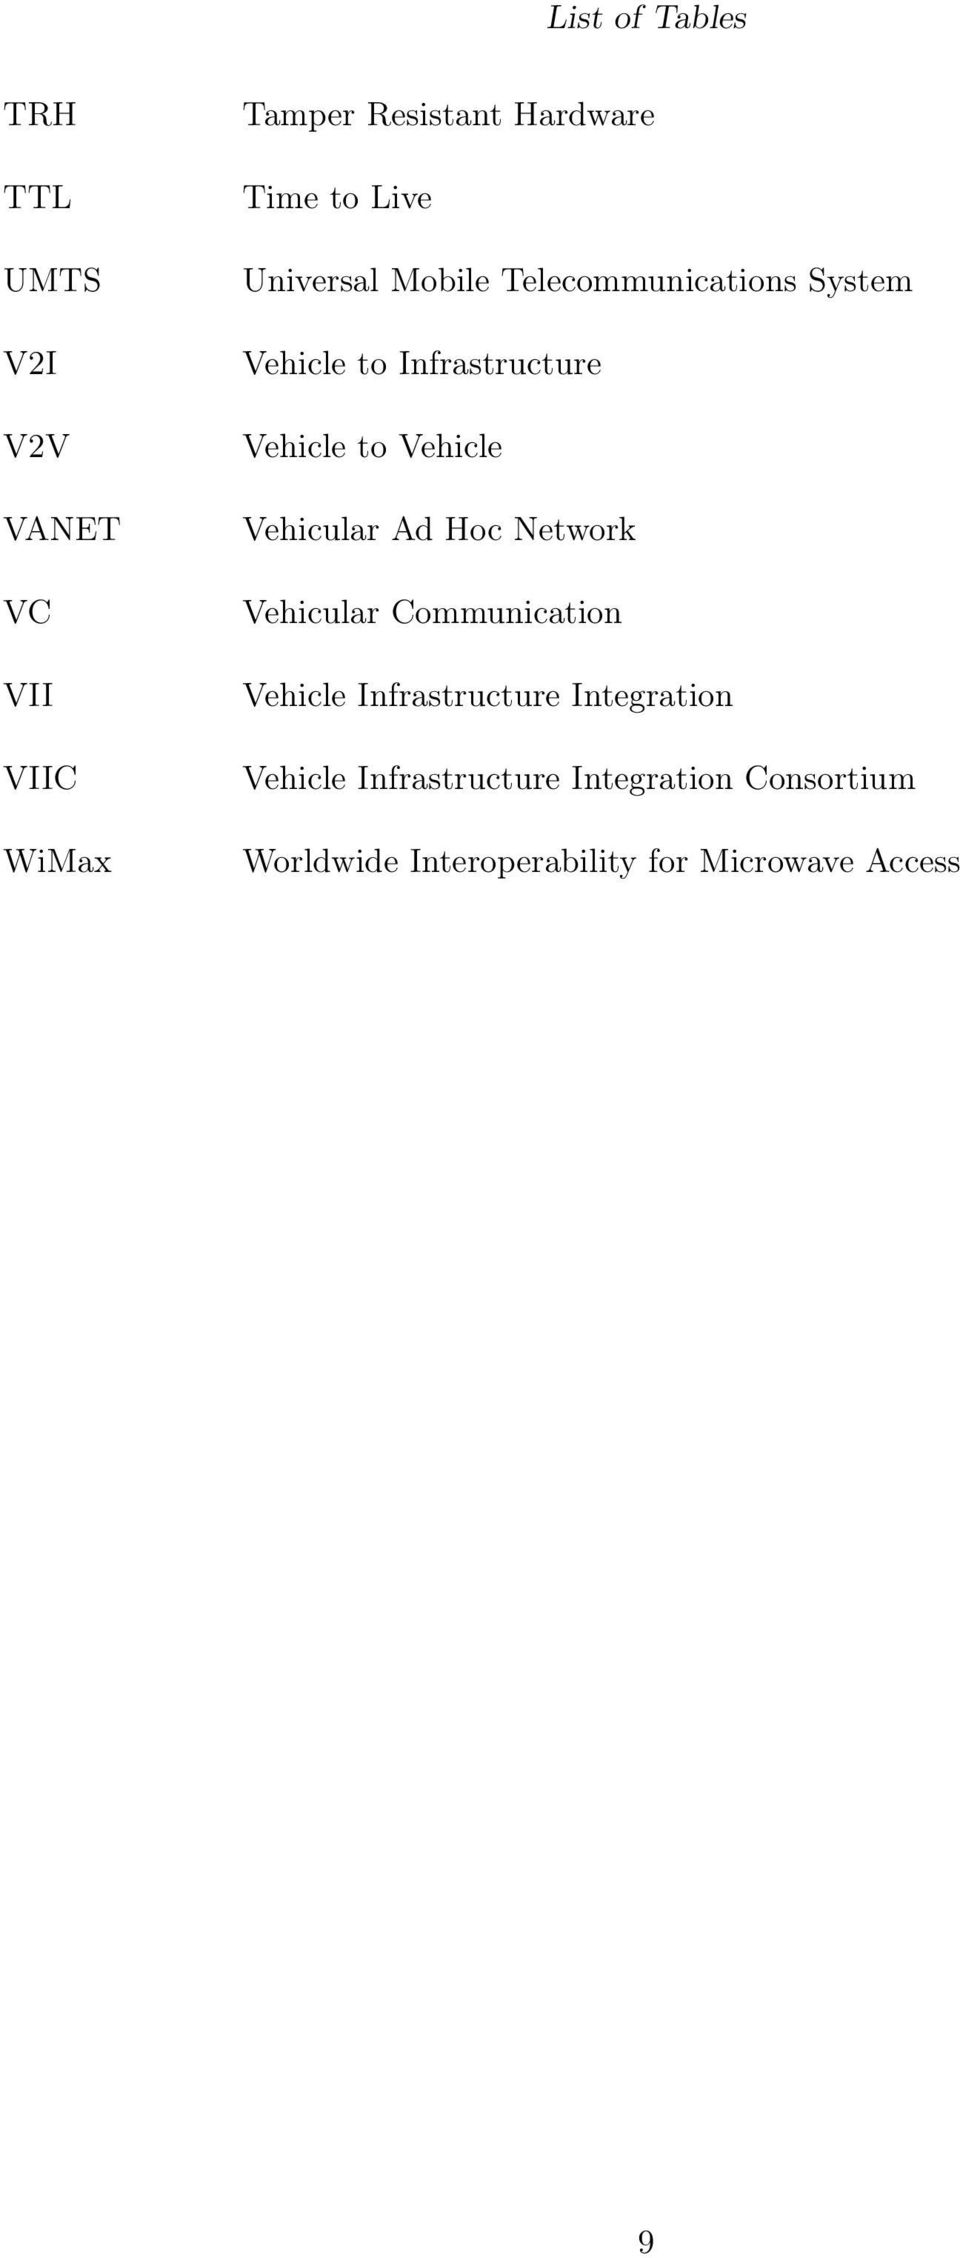 vehicular ad hoc networks thesis In vehicular networks, regular exchange of current position, direction, speed, etc, enable mobile vehicle to foresee an imminent vehicle accident and notify the driver early enough in order to take appropriate action(s) or the vehicle on its own may take adequate preventive measures to avert the looming accident.